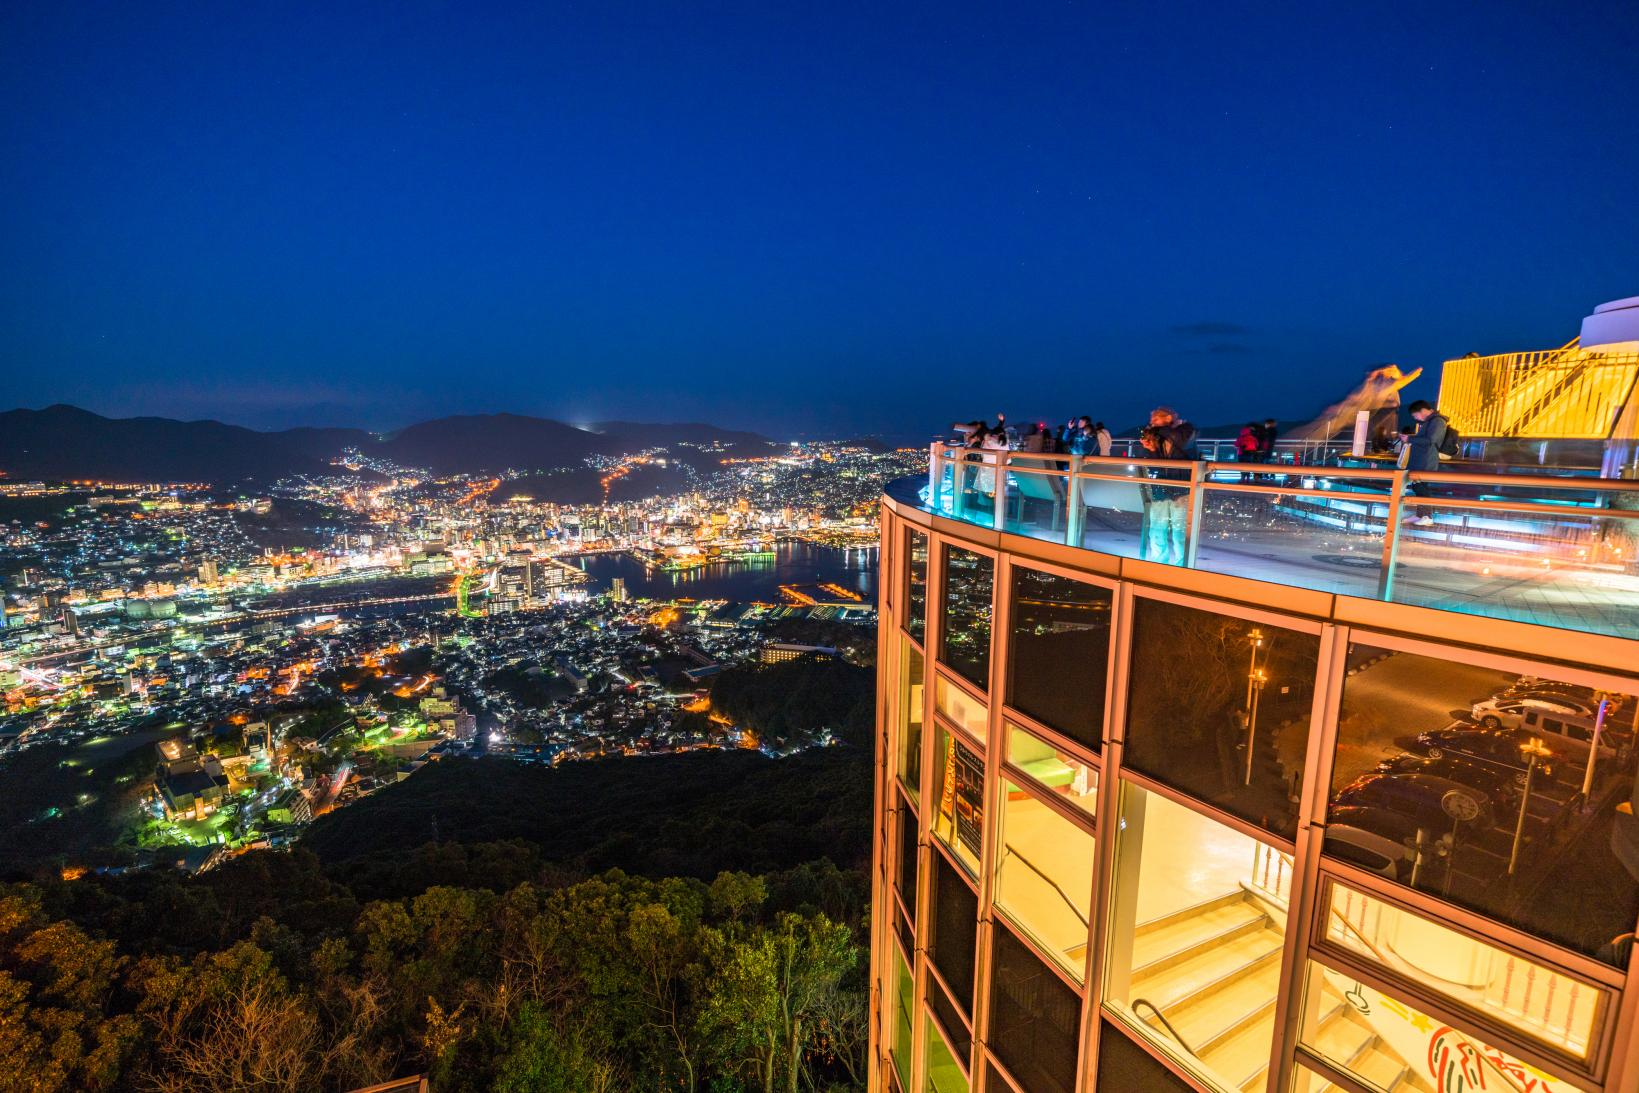 The Must-See Spots in Nagasaki City (1 Day)-1